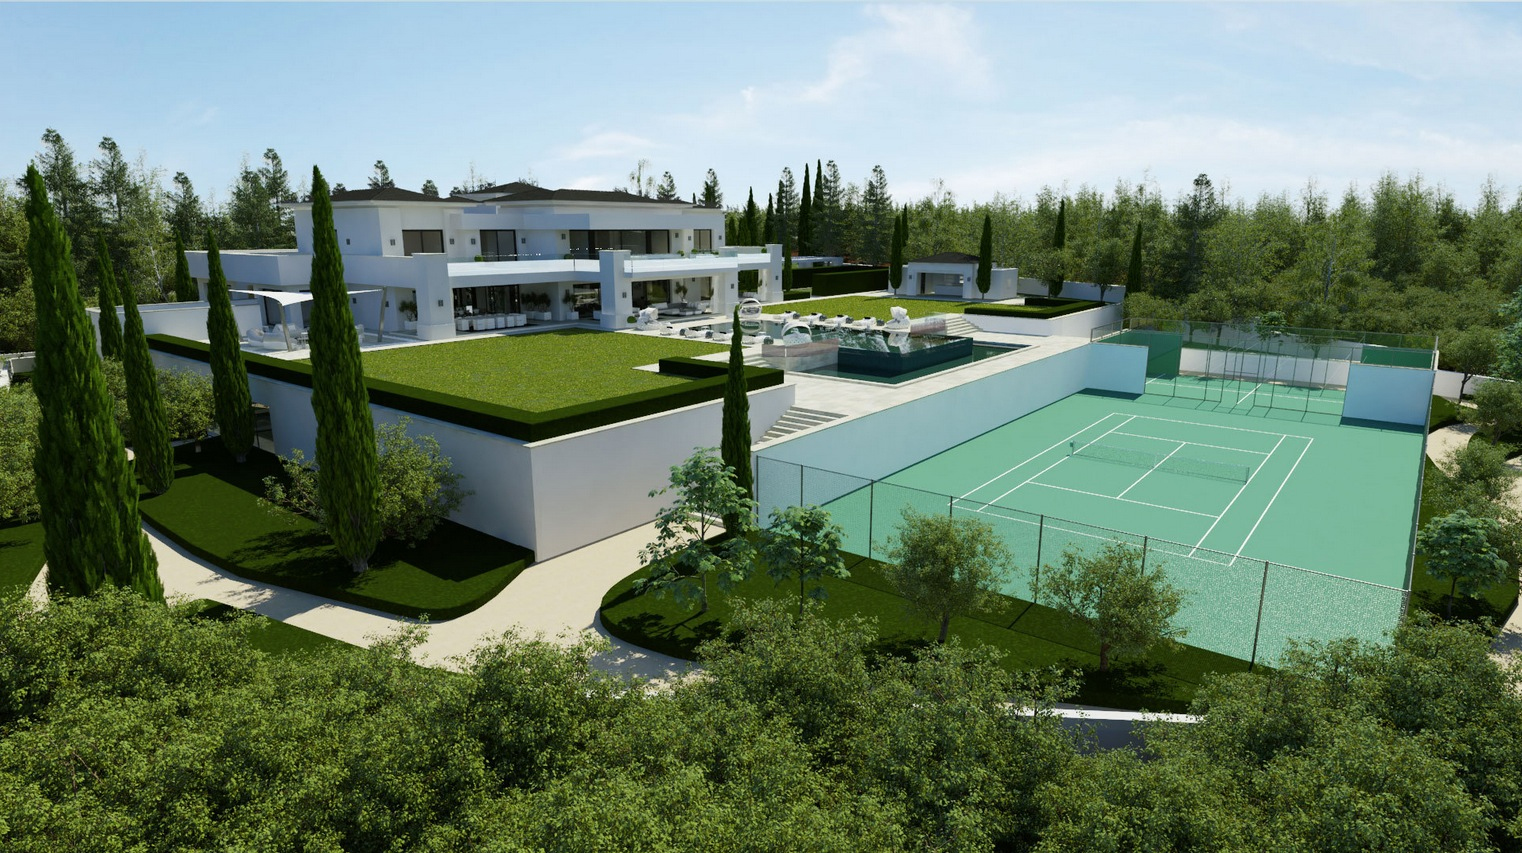 Maison Futuriste Ecologique Private Tennis Court Interior Design Ideas